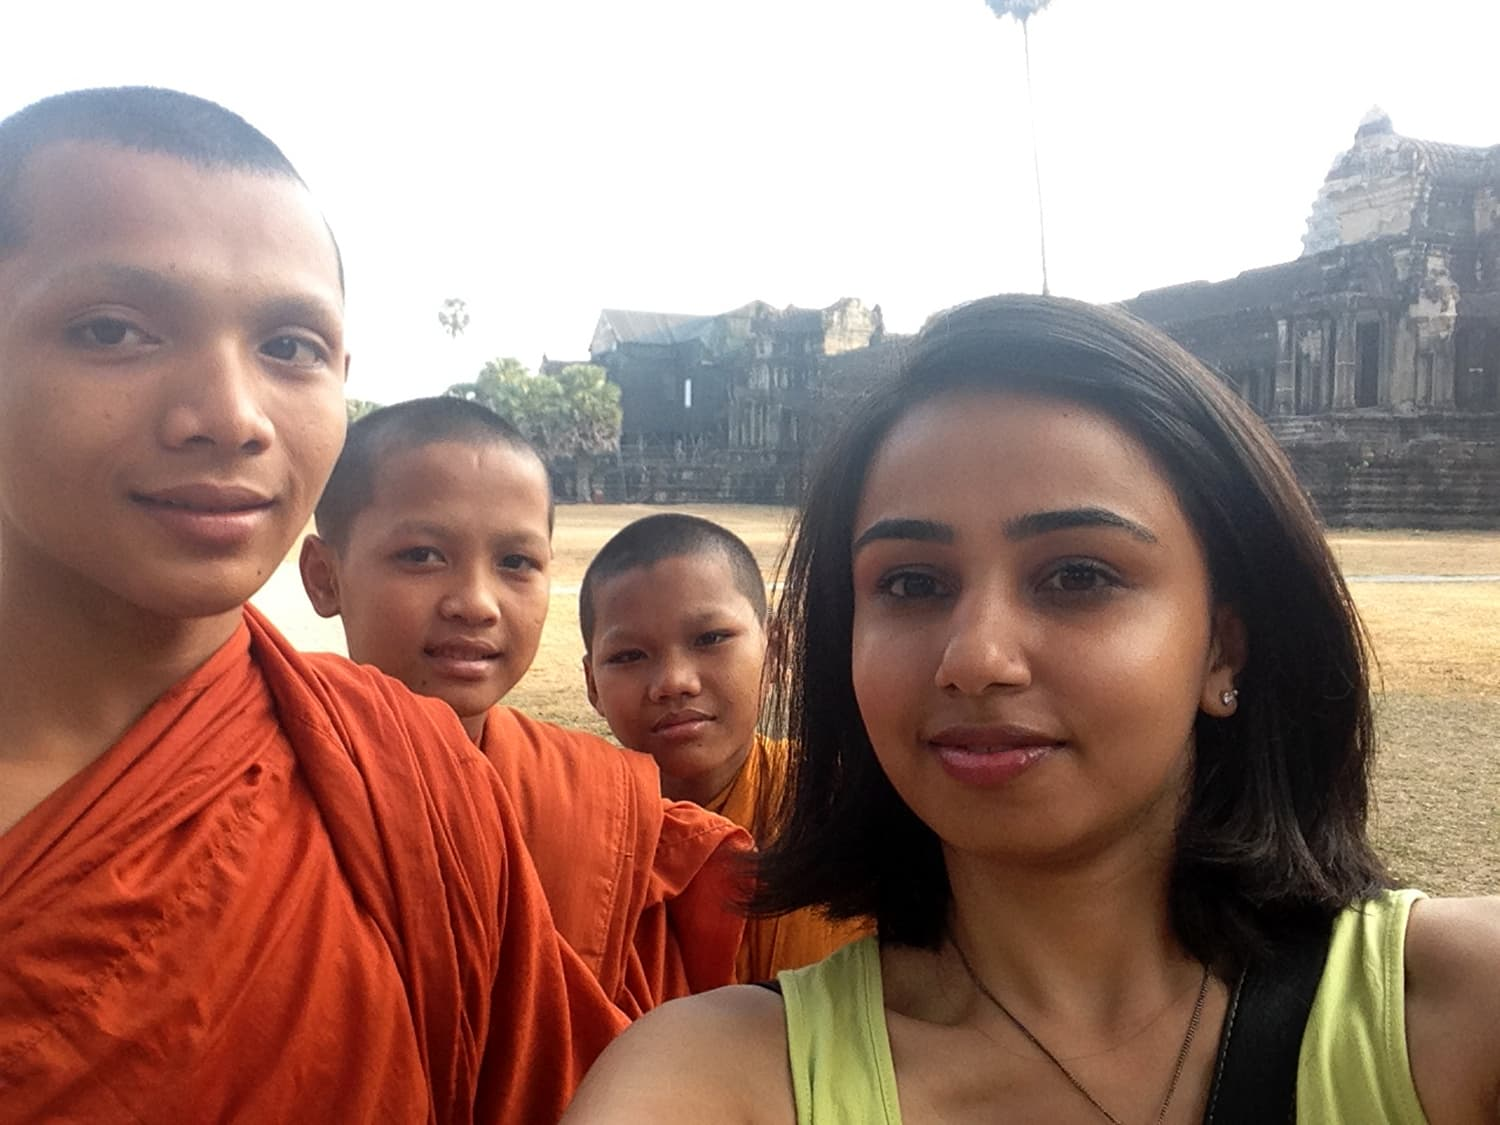 These friendly monks agreed for a photo, South East Asia.